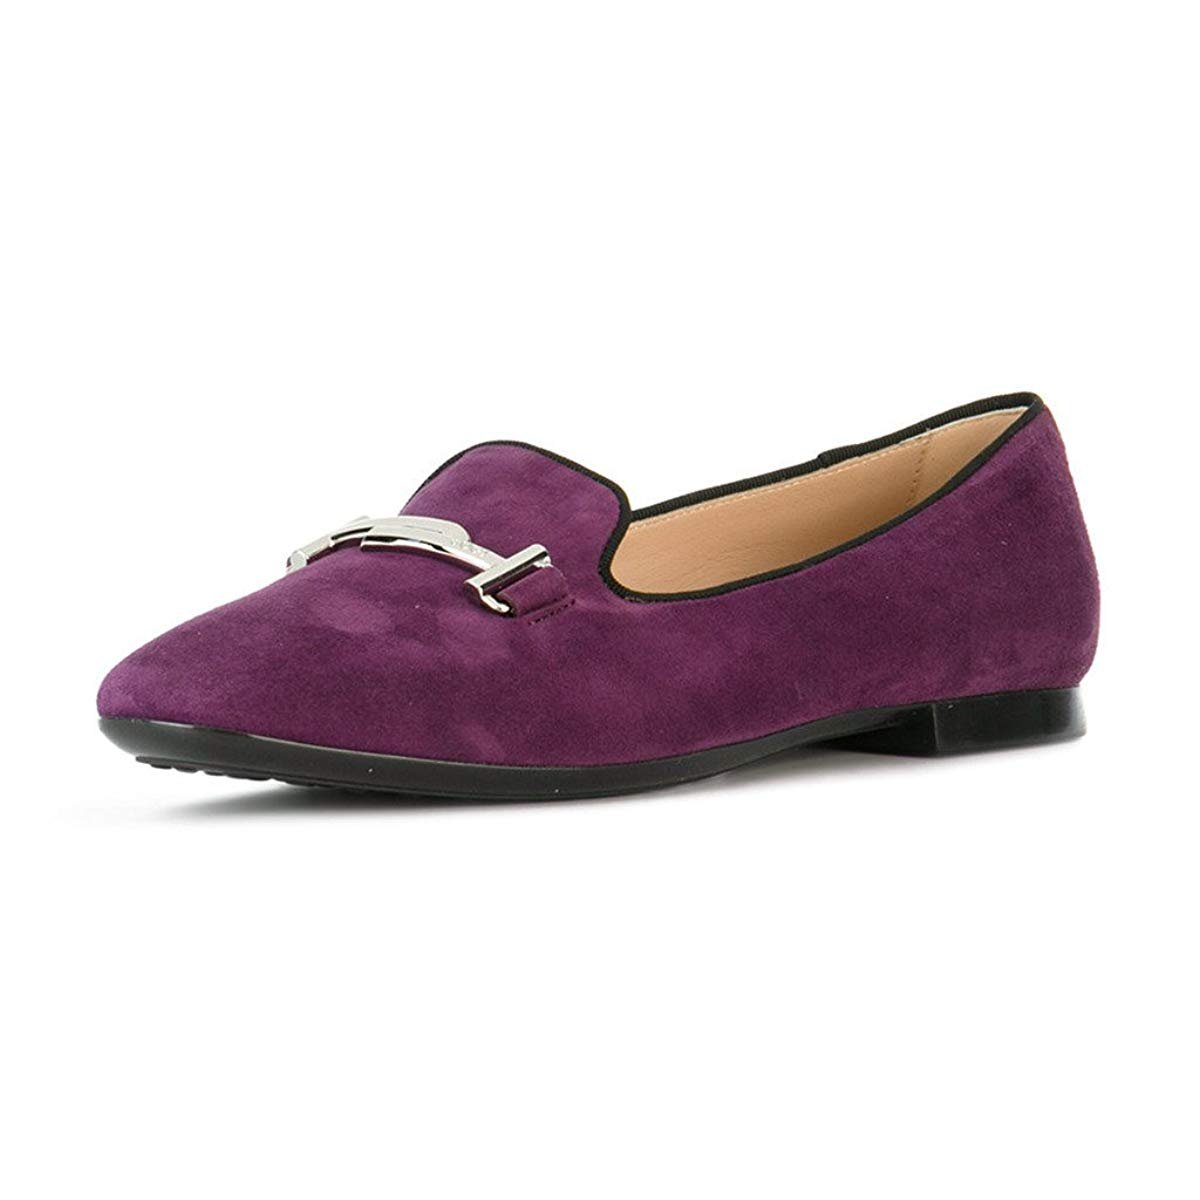 XYD Comfortable Low Heel Slip On Suede Flats Pointed Toe Ballet Loafer Dress Shoes for Women B075SDQCGX 5 B(M) US|Dark Purple